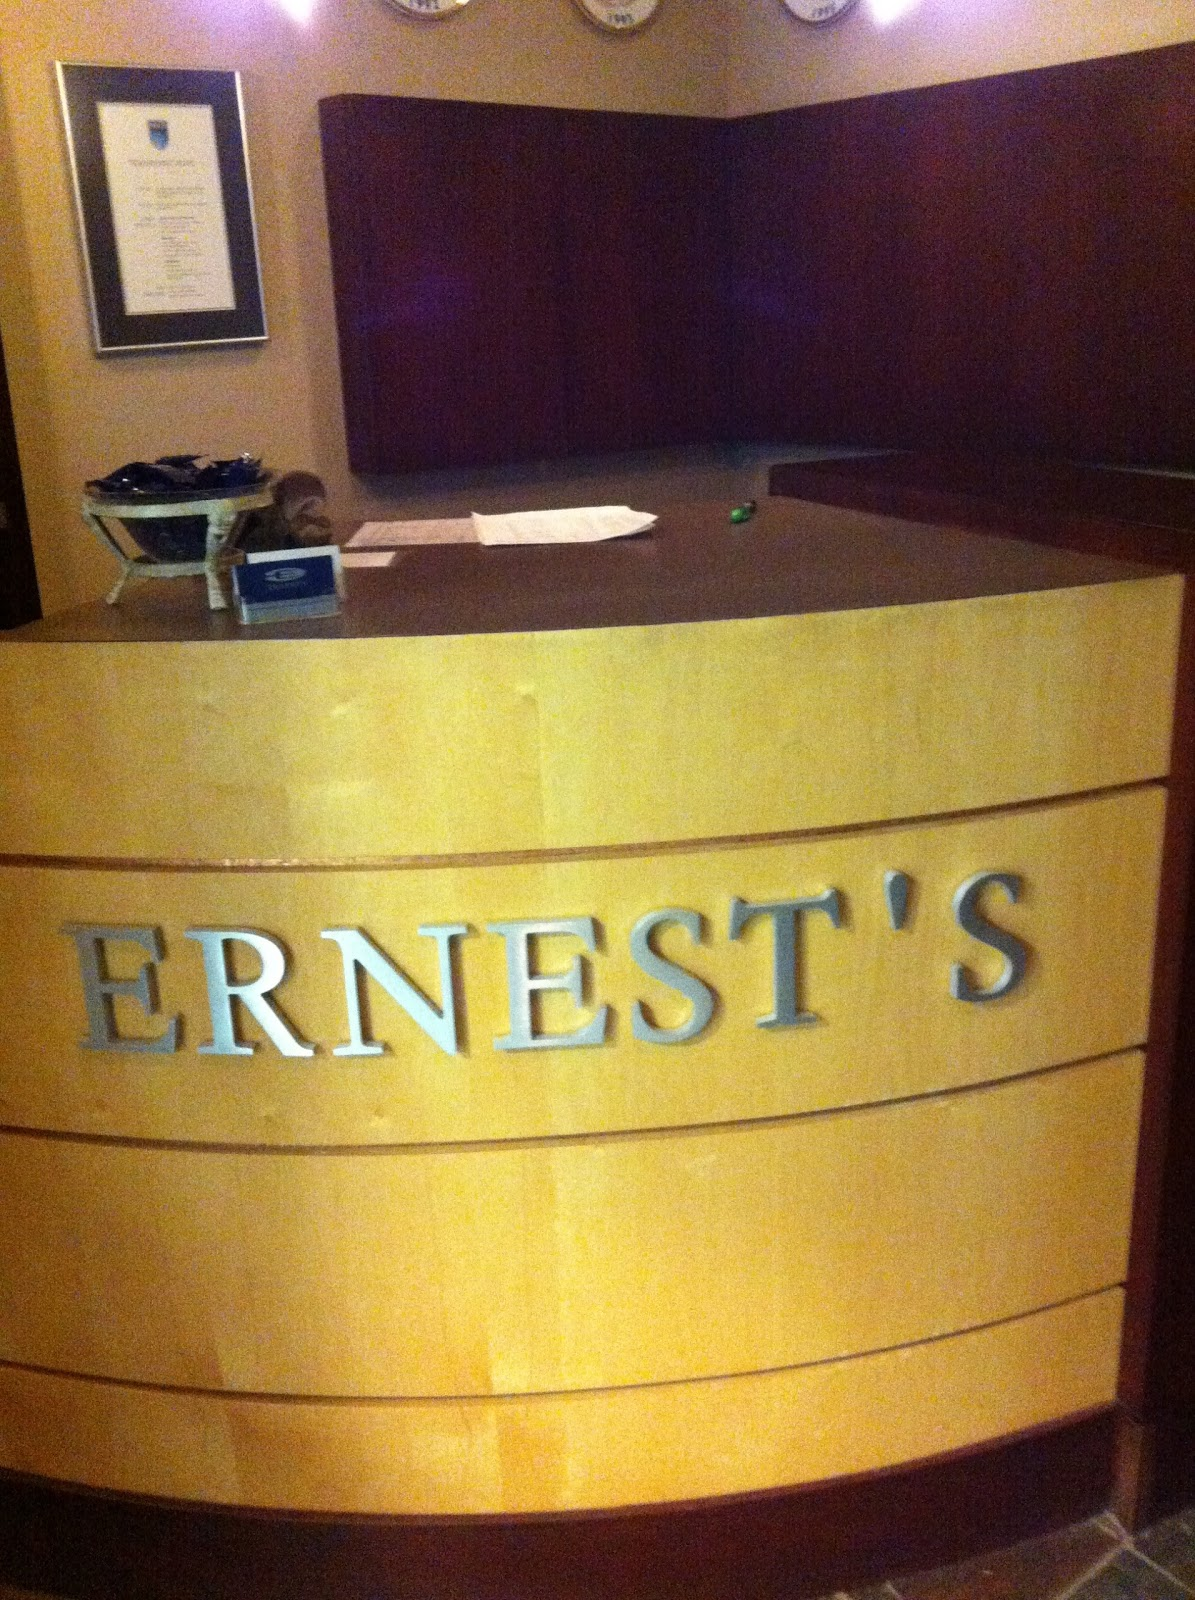 Back In August We Had The Truly Exciting Opportunity To Place A Reservation For Dinner Buffet At Ernests Is Dining Room Located Within